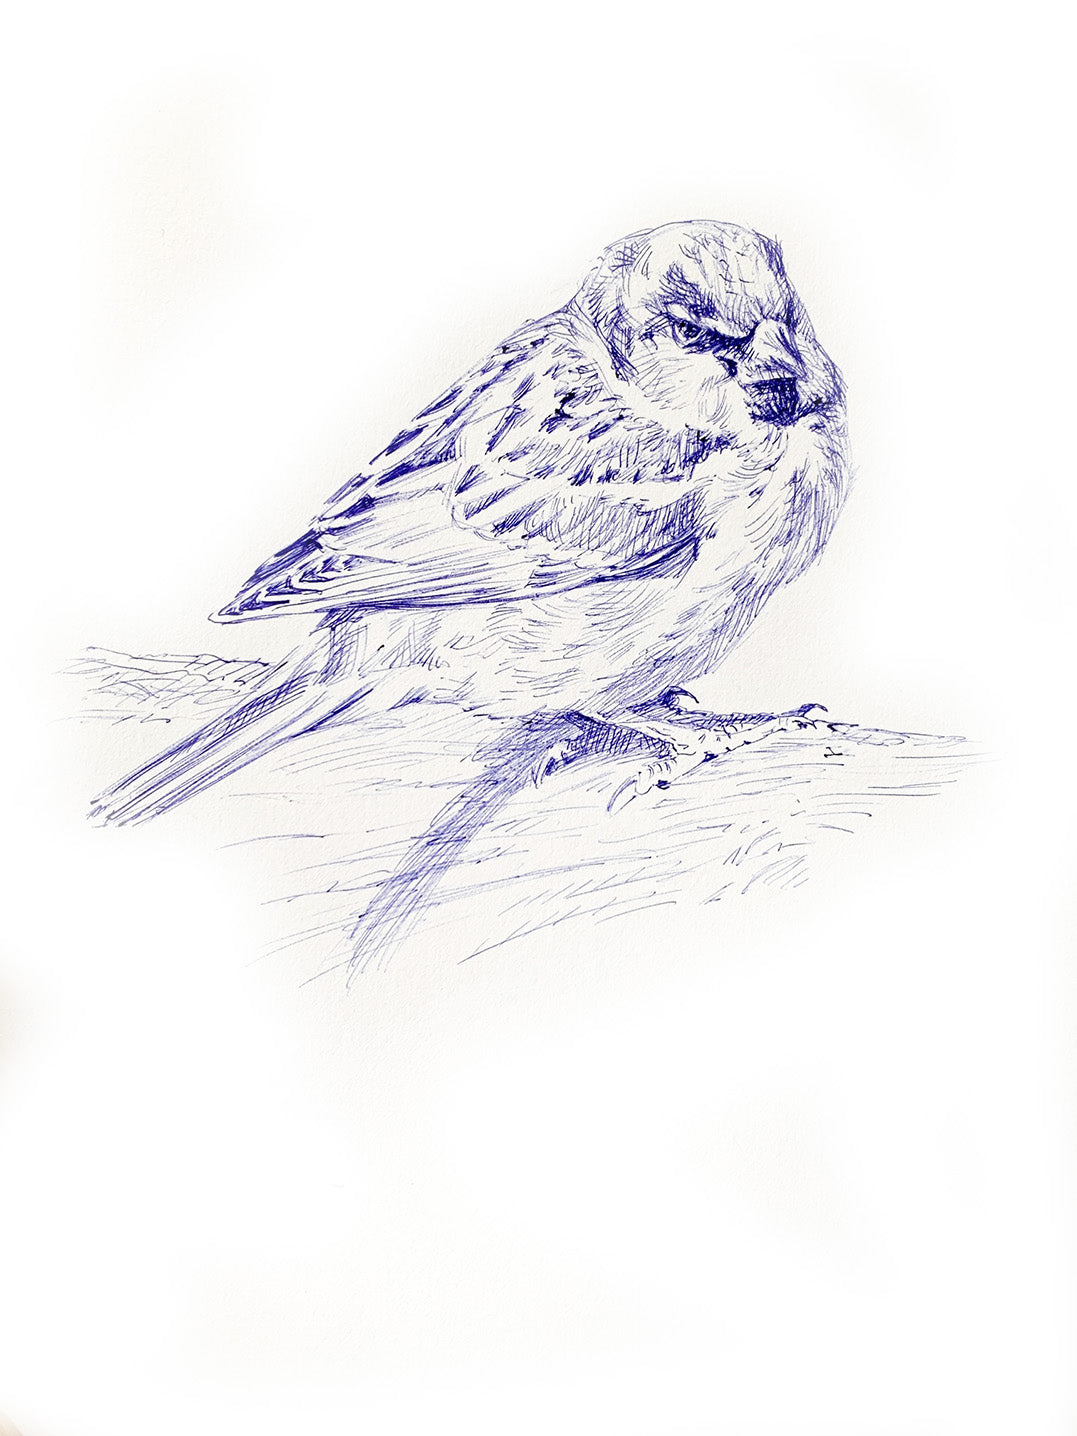 'House Sparrow' - Original Ink Drawing by David Cemmick - 35 x 25cm